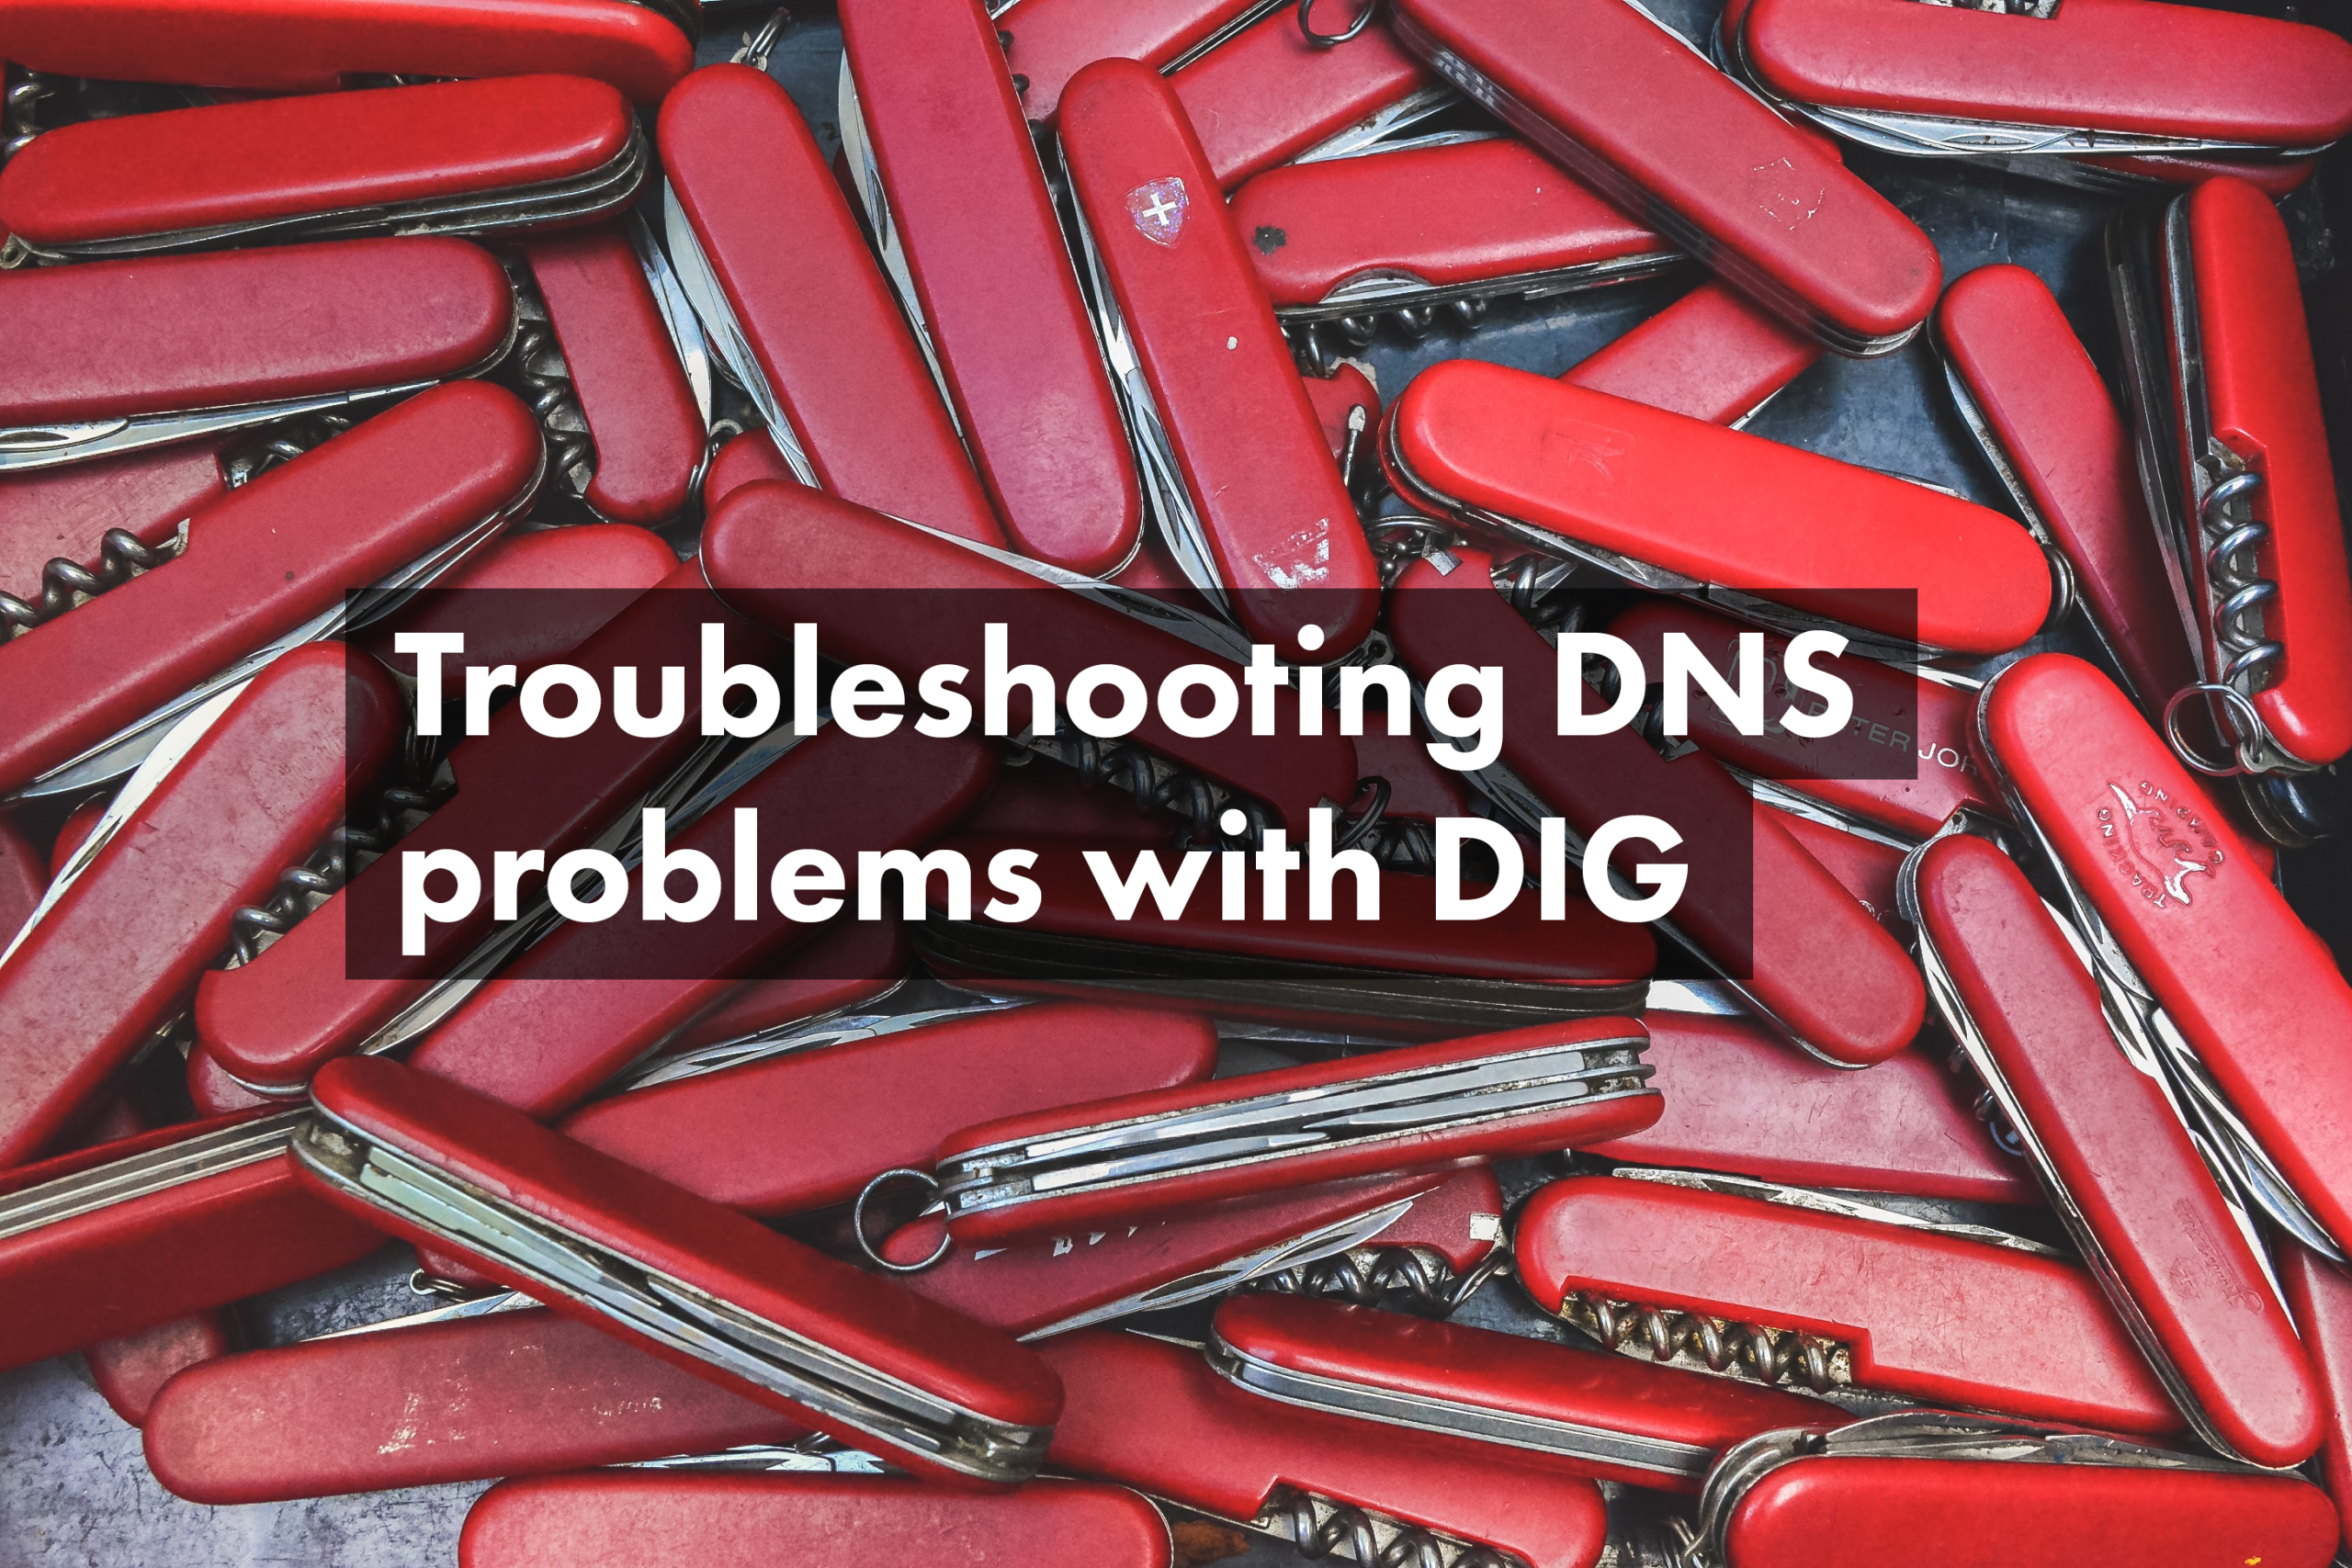 Troubleshooting DNS problems with DIG